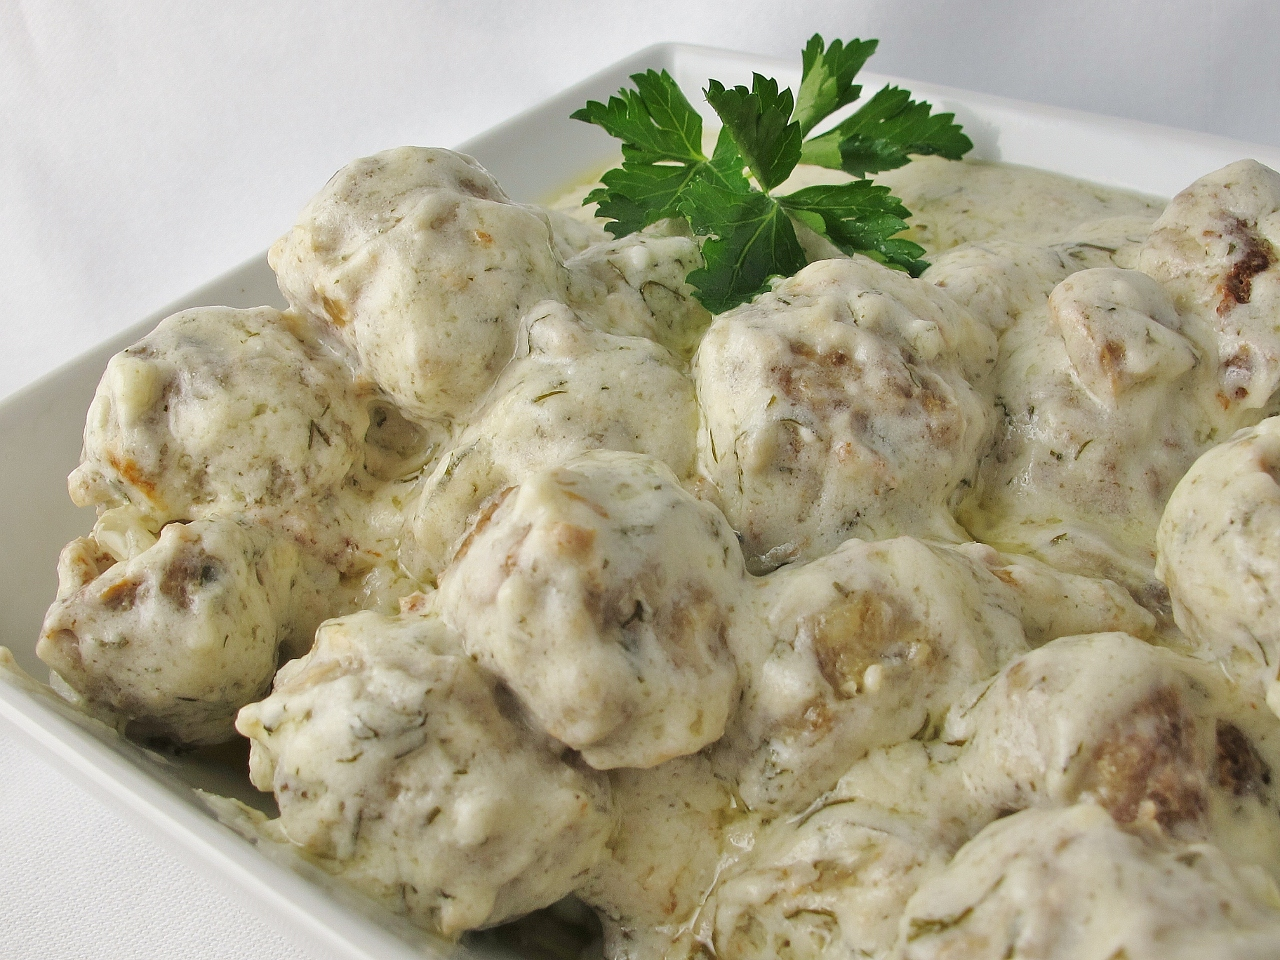 meatballs in a sour cream sauce garnished with a parsley sprig